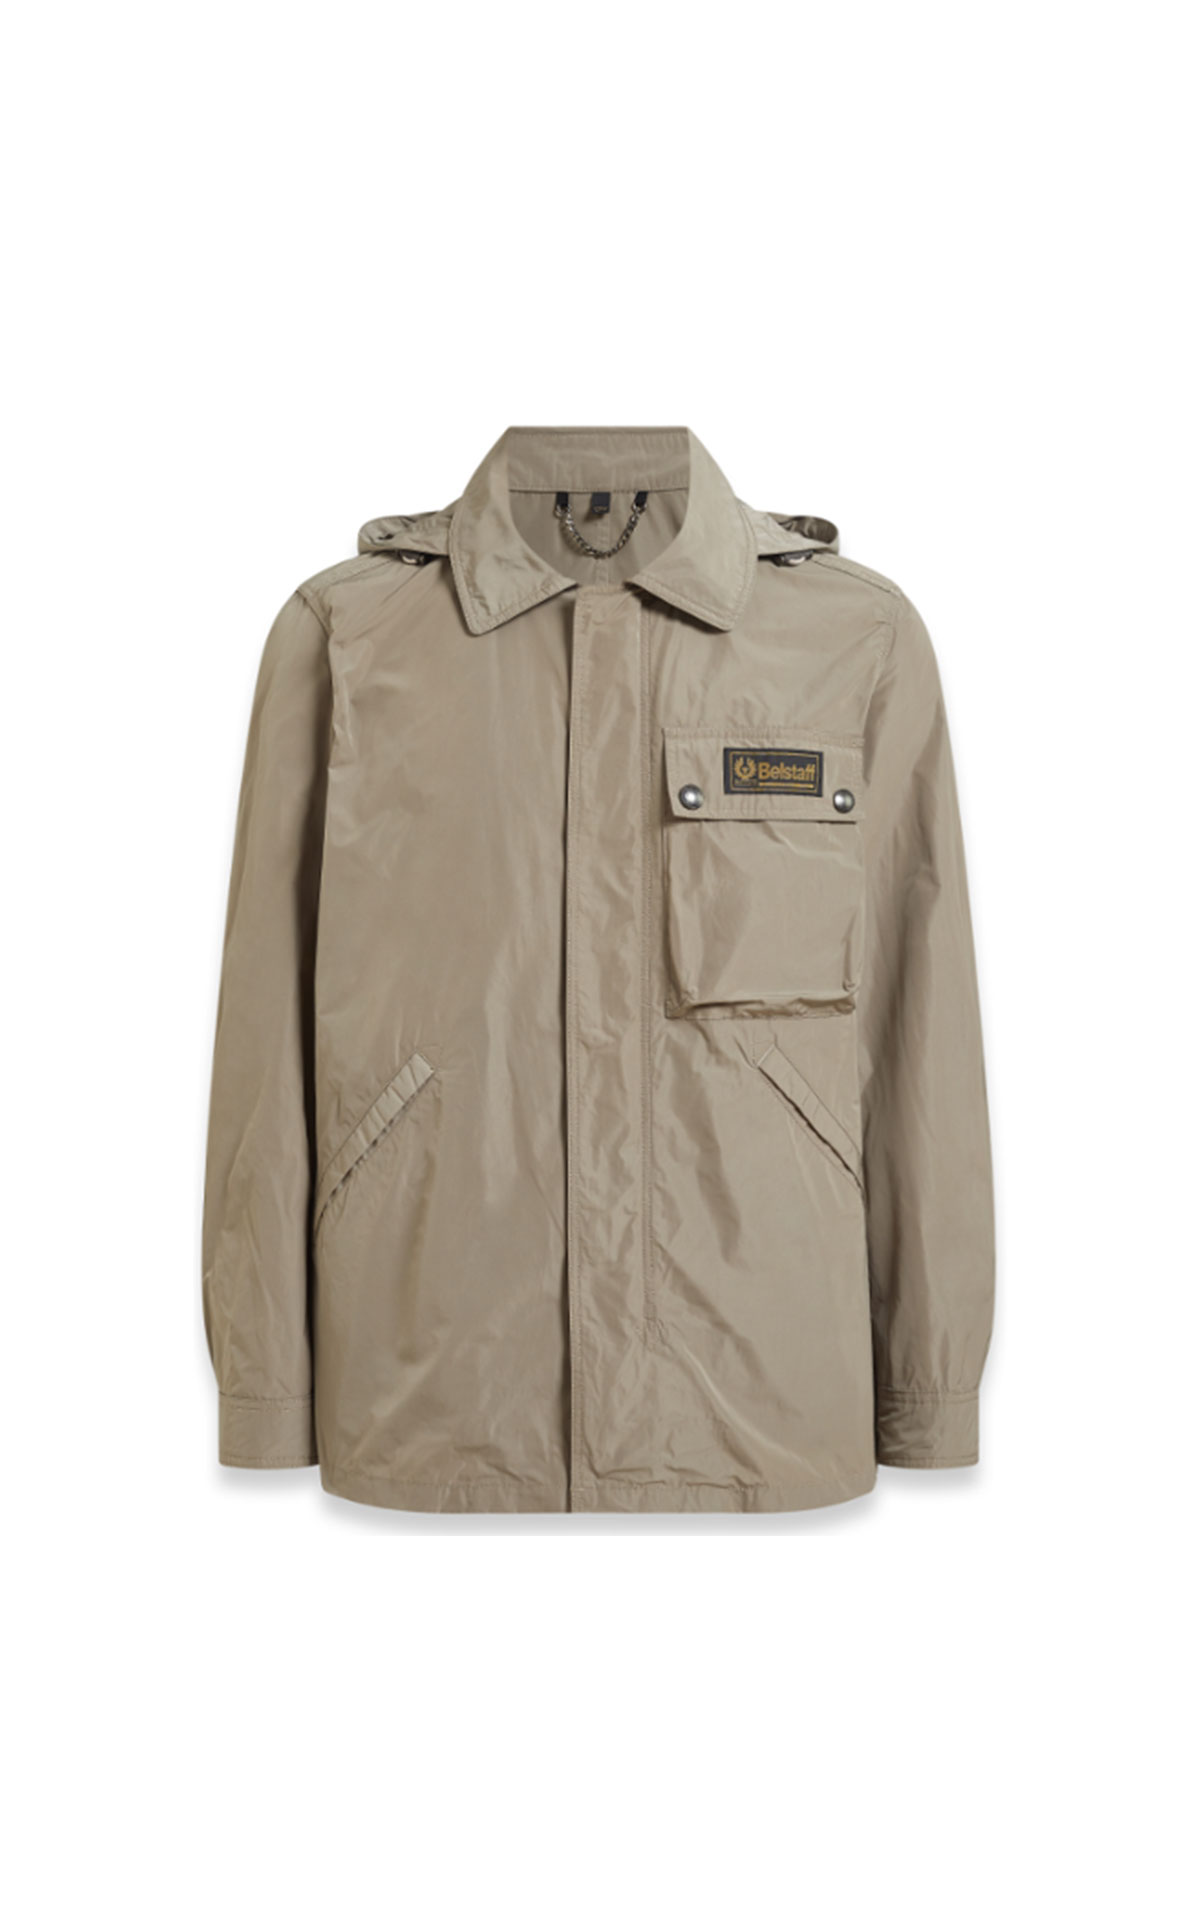 Belstaff Weekender jacket in taupe from Bicester Village